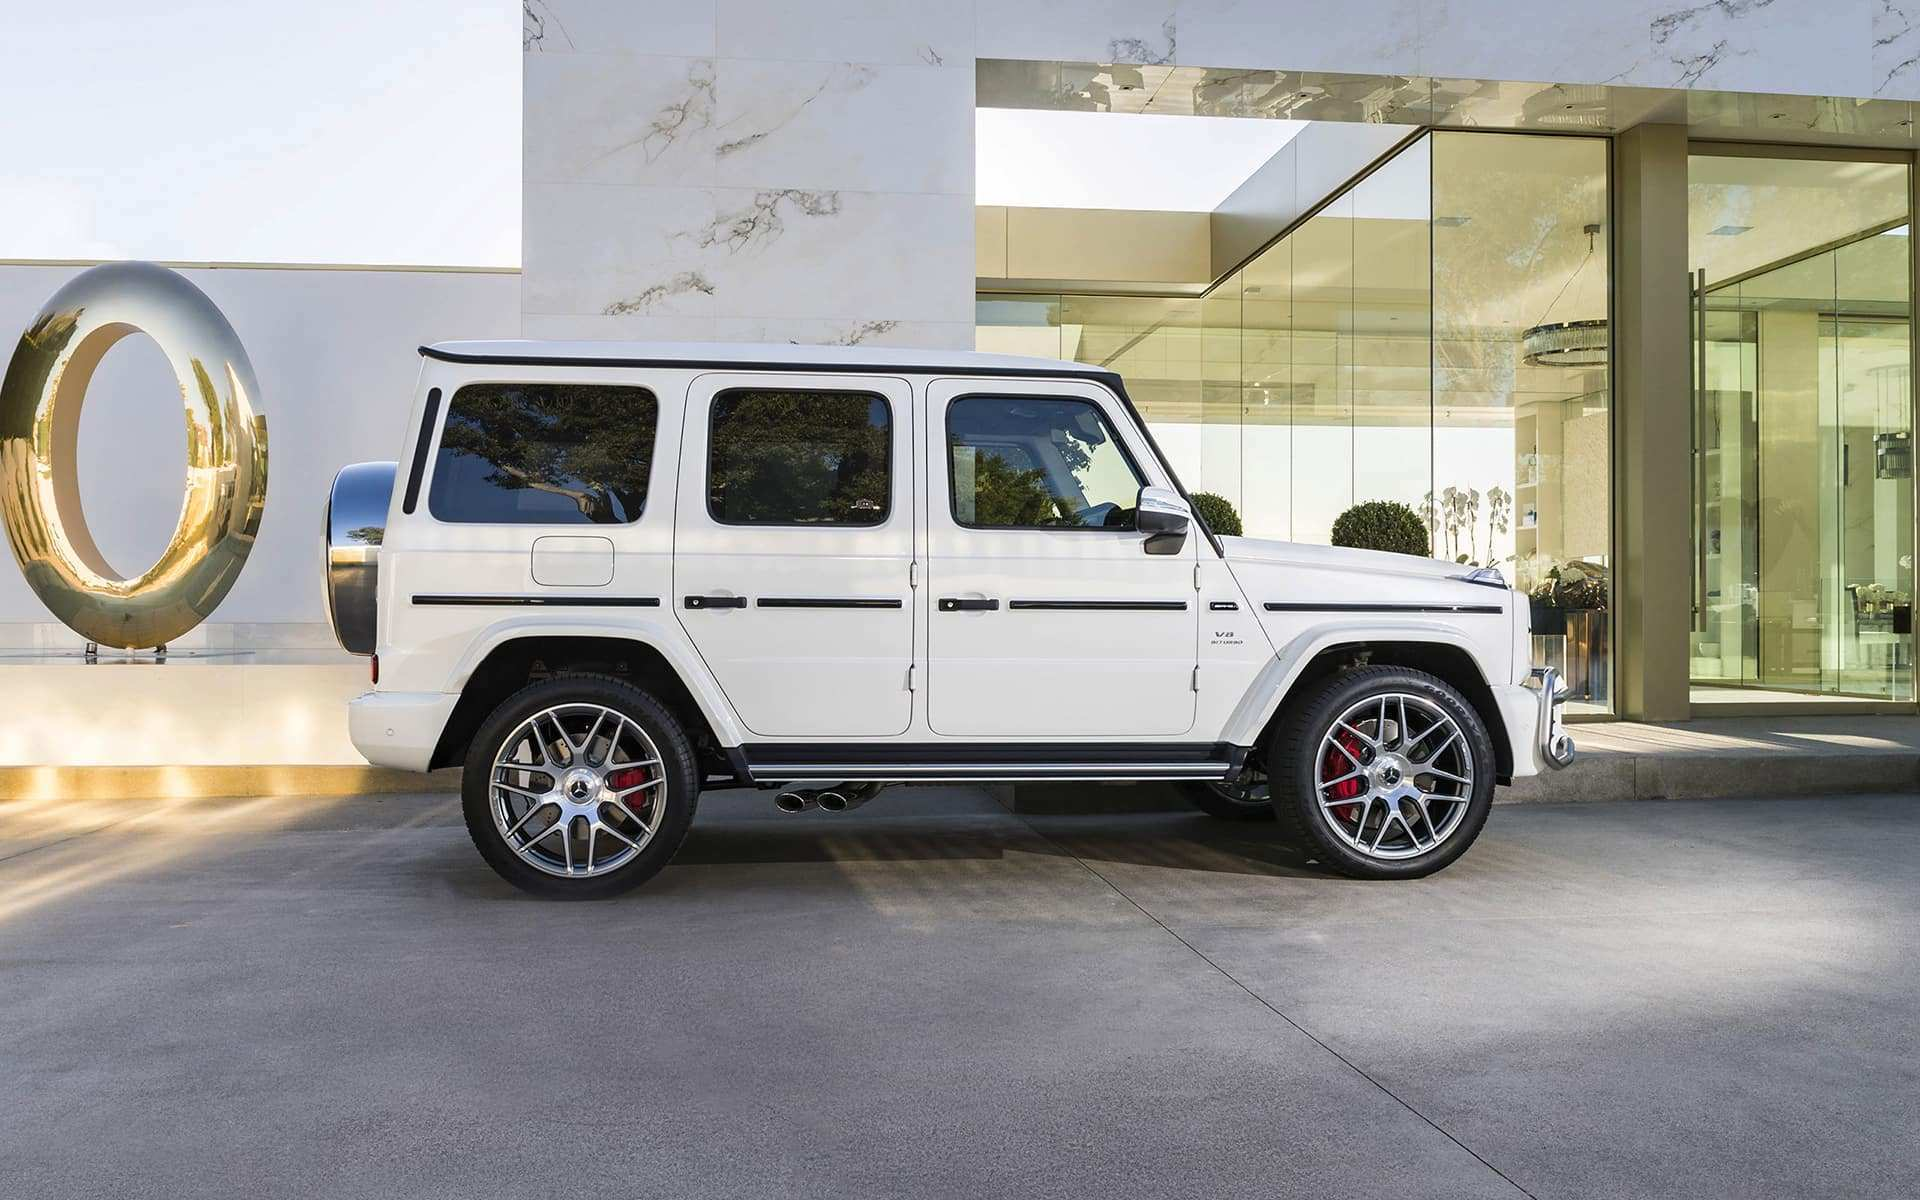 79 New 2019 Mercedes G Wagon For Sale Price Speed Test by 2019 Mercedes G Wagon For Sale Price